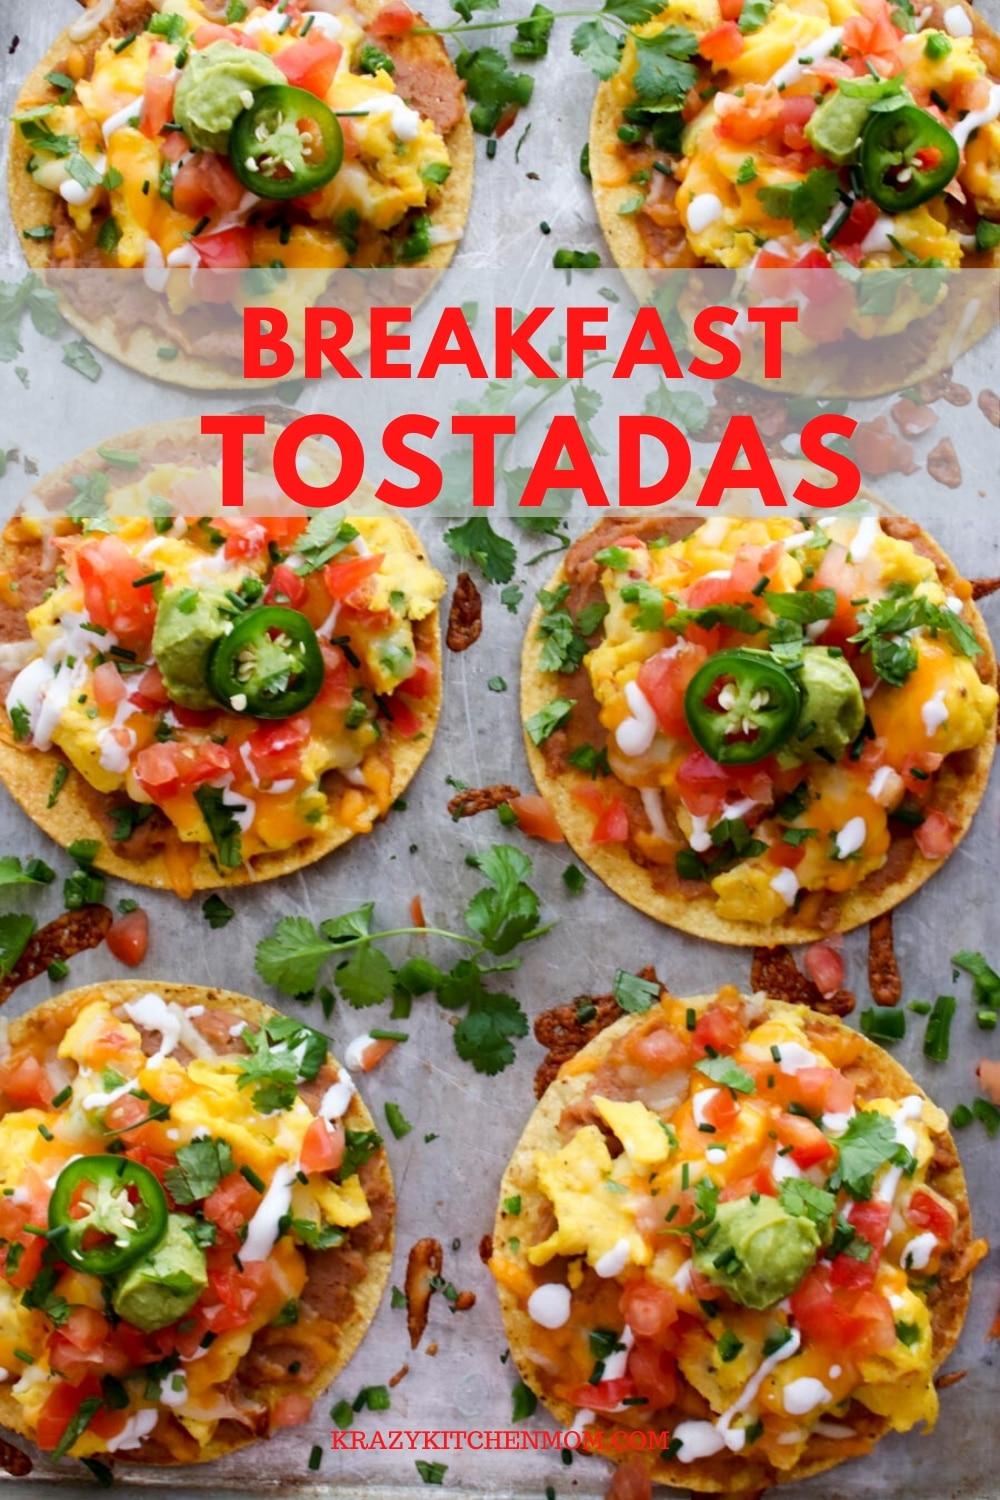 Huevos Rancheros Breakfast Tostadas is a great recipe for breakfast, lunch, or dinner. They're made with creamy refried beans, fluffy scrambled eggs with melted cheese, diced tomatoes, diced, onions, guacamole, sour cream, cilantro, and jalapeños. via @krazykitchenmom